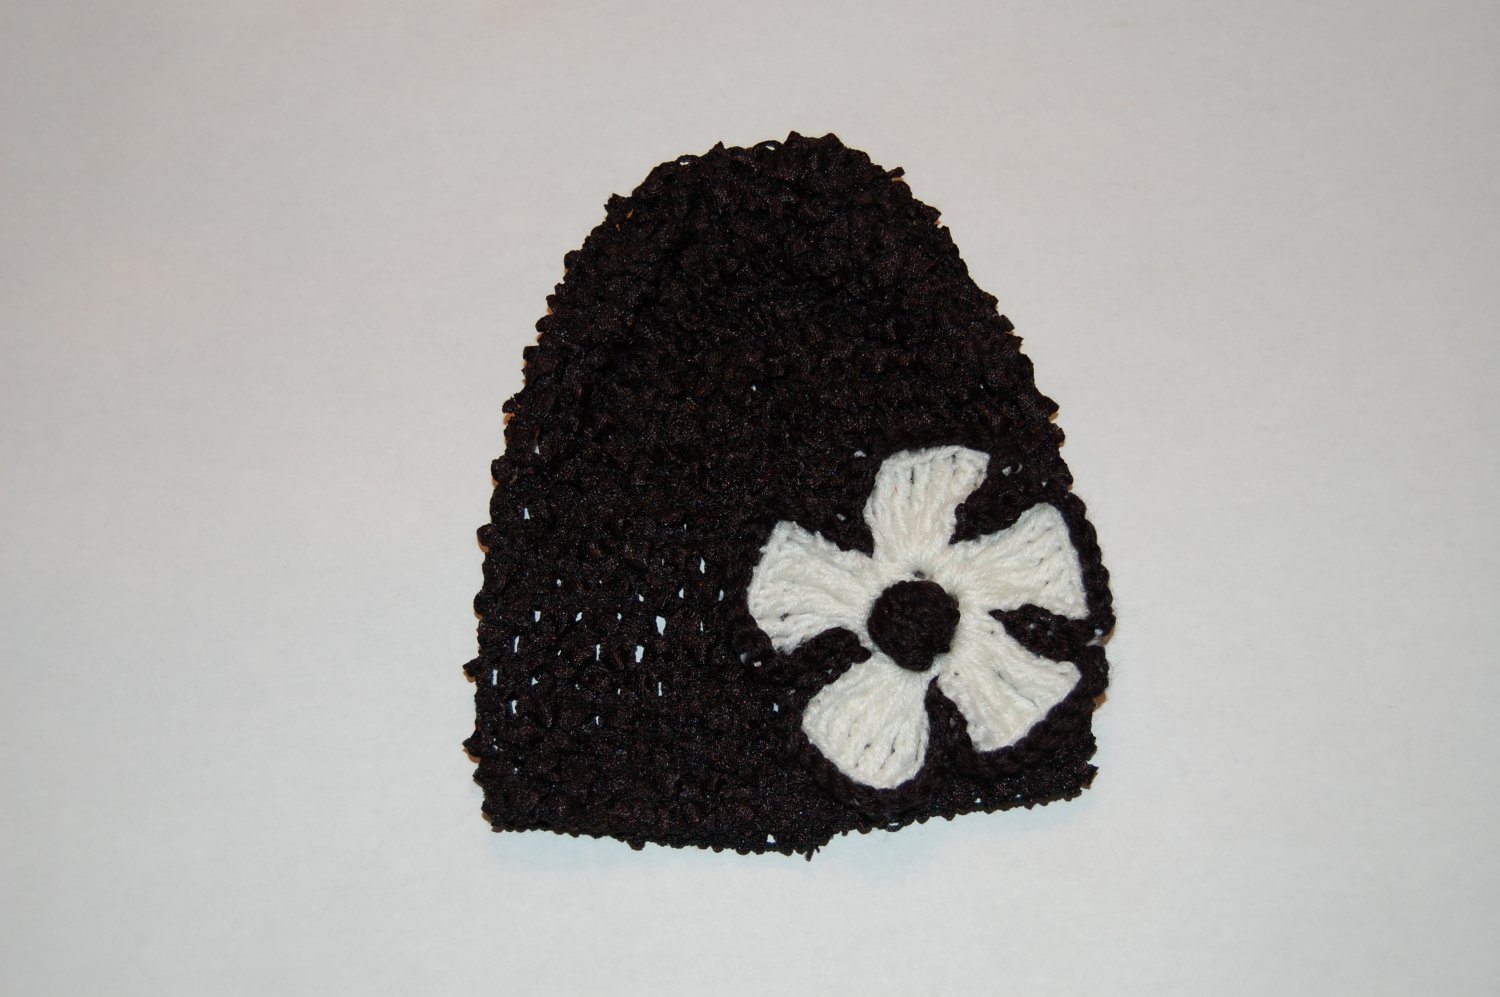 Crocheted Black Hat with White Crocheted Flower